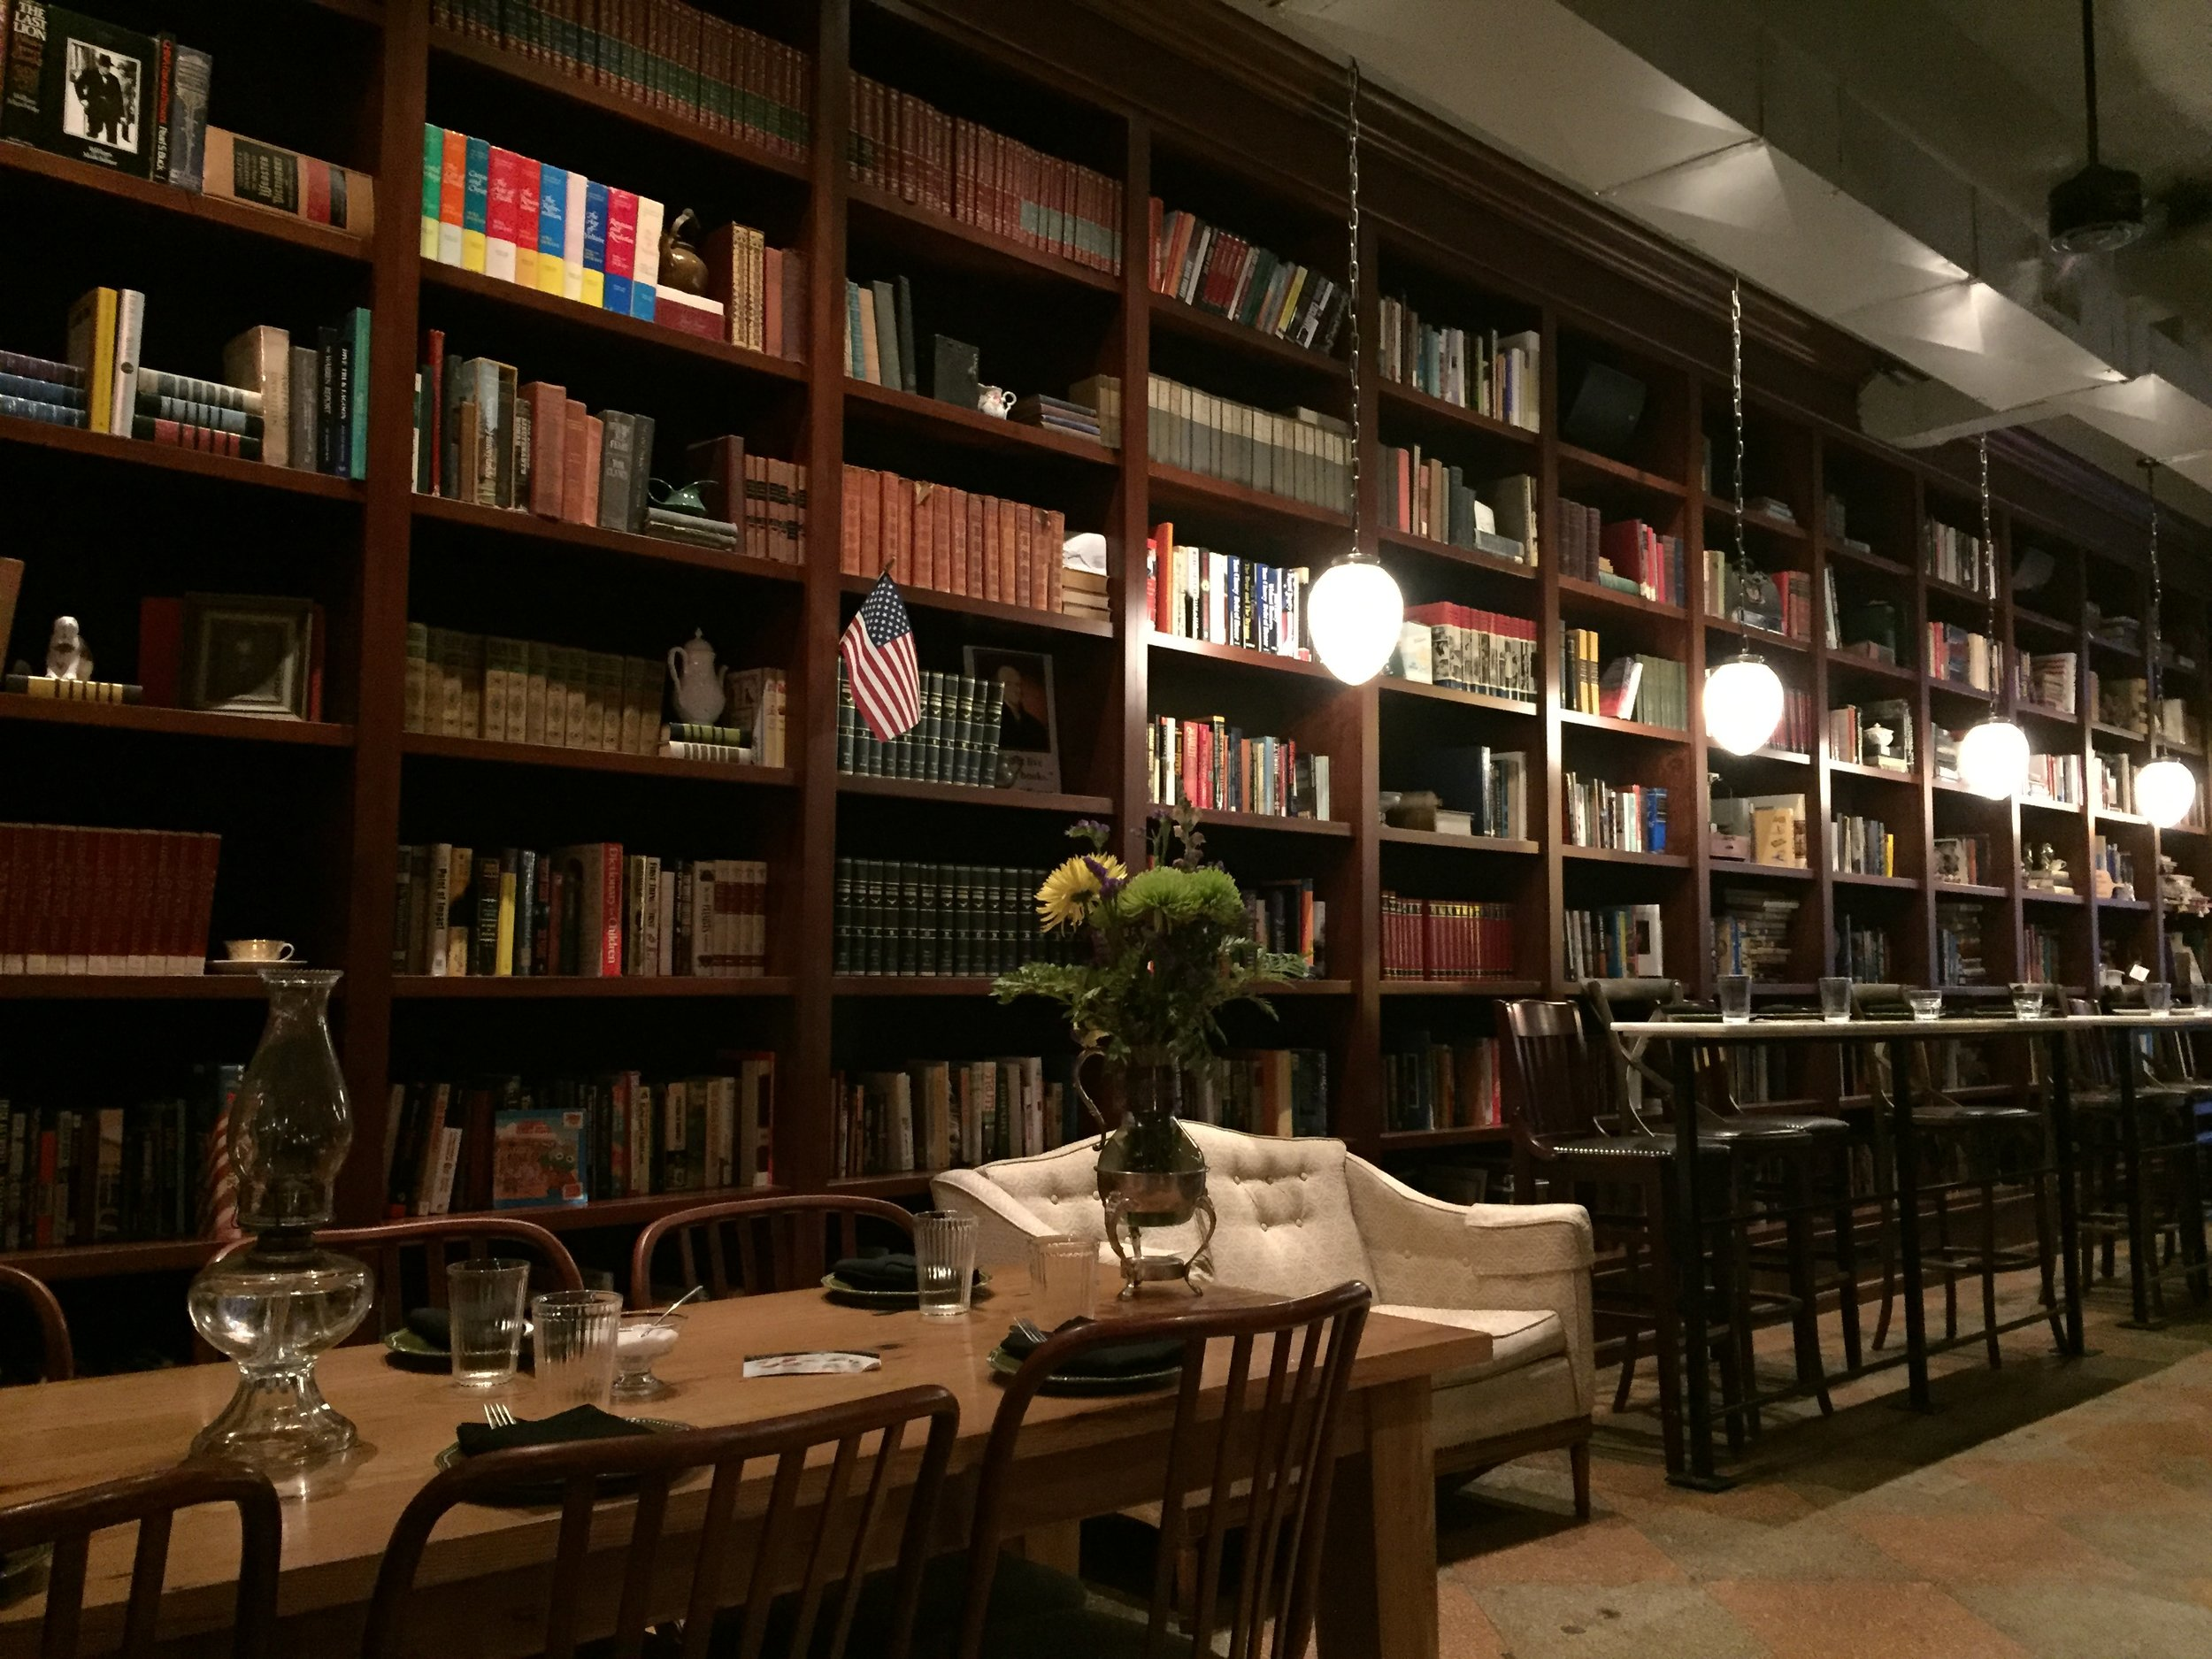 [image description: Inside the restaurant Asterisk Supper Club. There are floor-to-ceiling dark wood bookshelves packed with vintage encyclopedias and modern paperbacks alike. There are dangling orb lights, high top bar seating, long low table seating, and a white loveseat.]